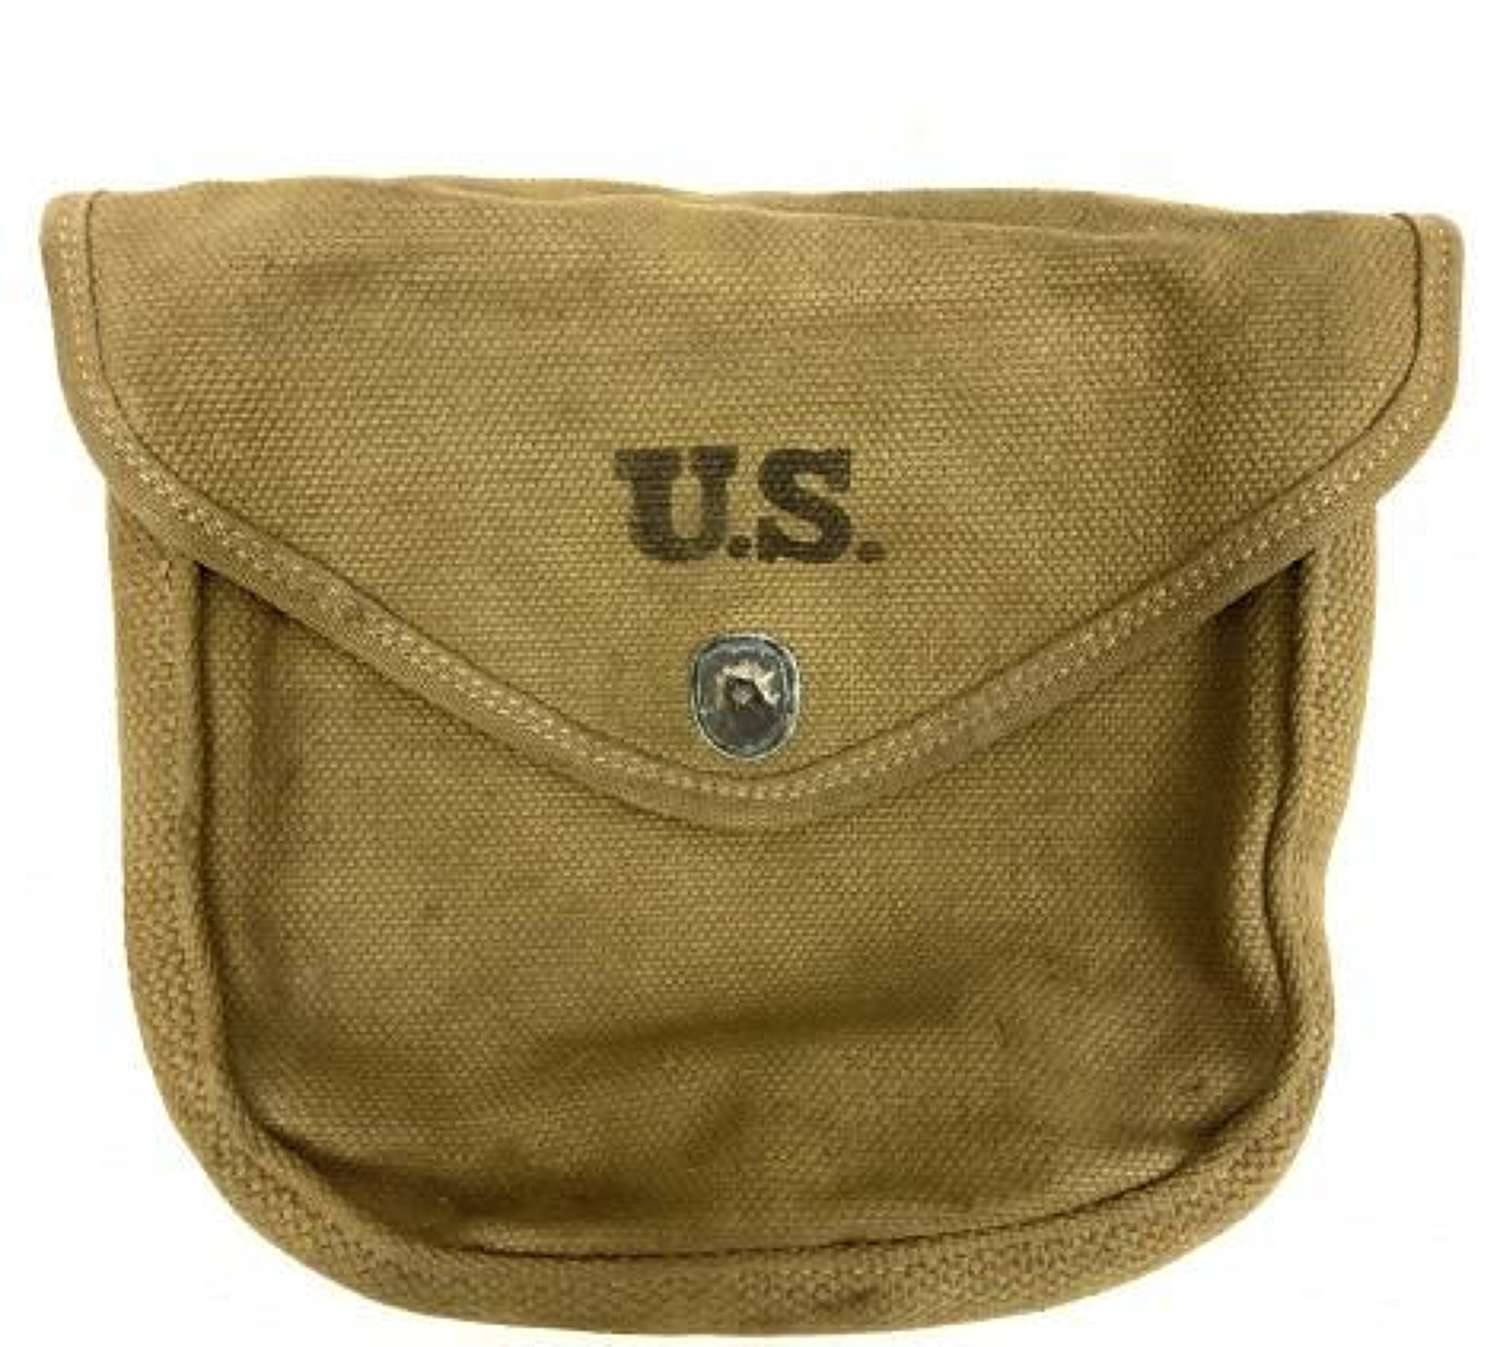 US Army Drum Magazine Pouch